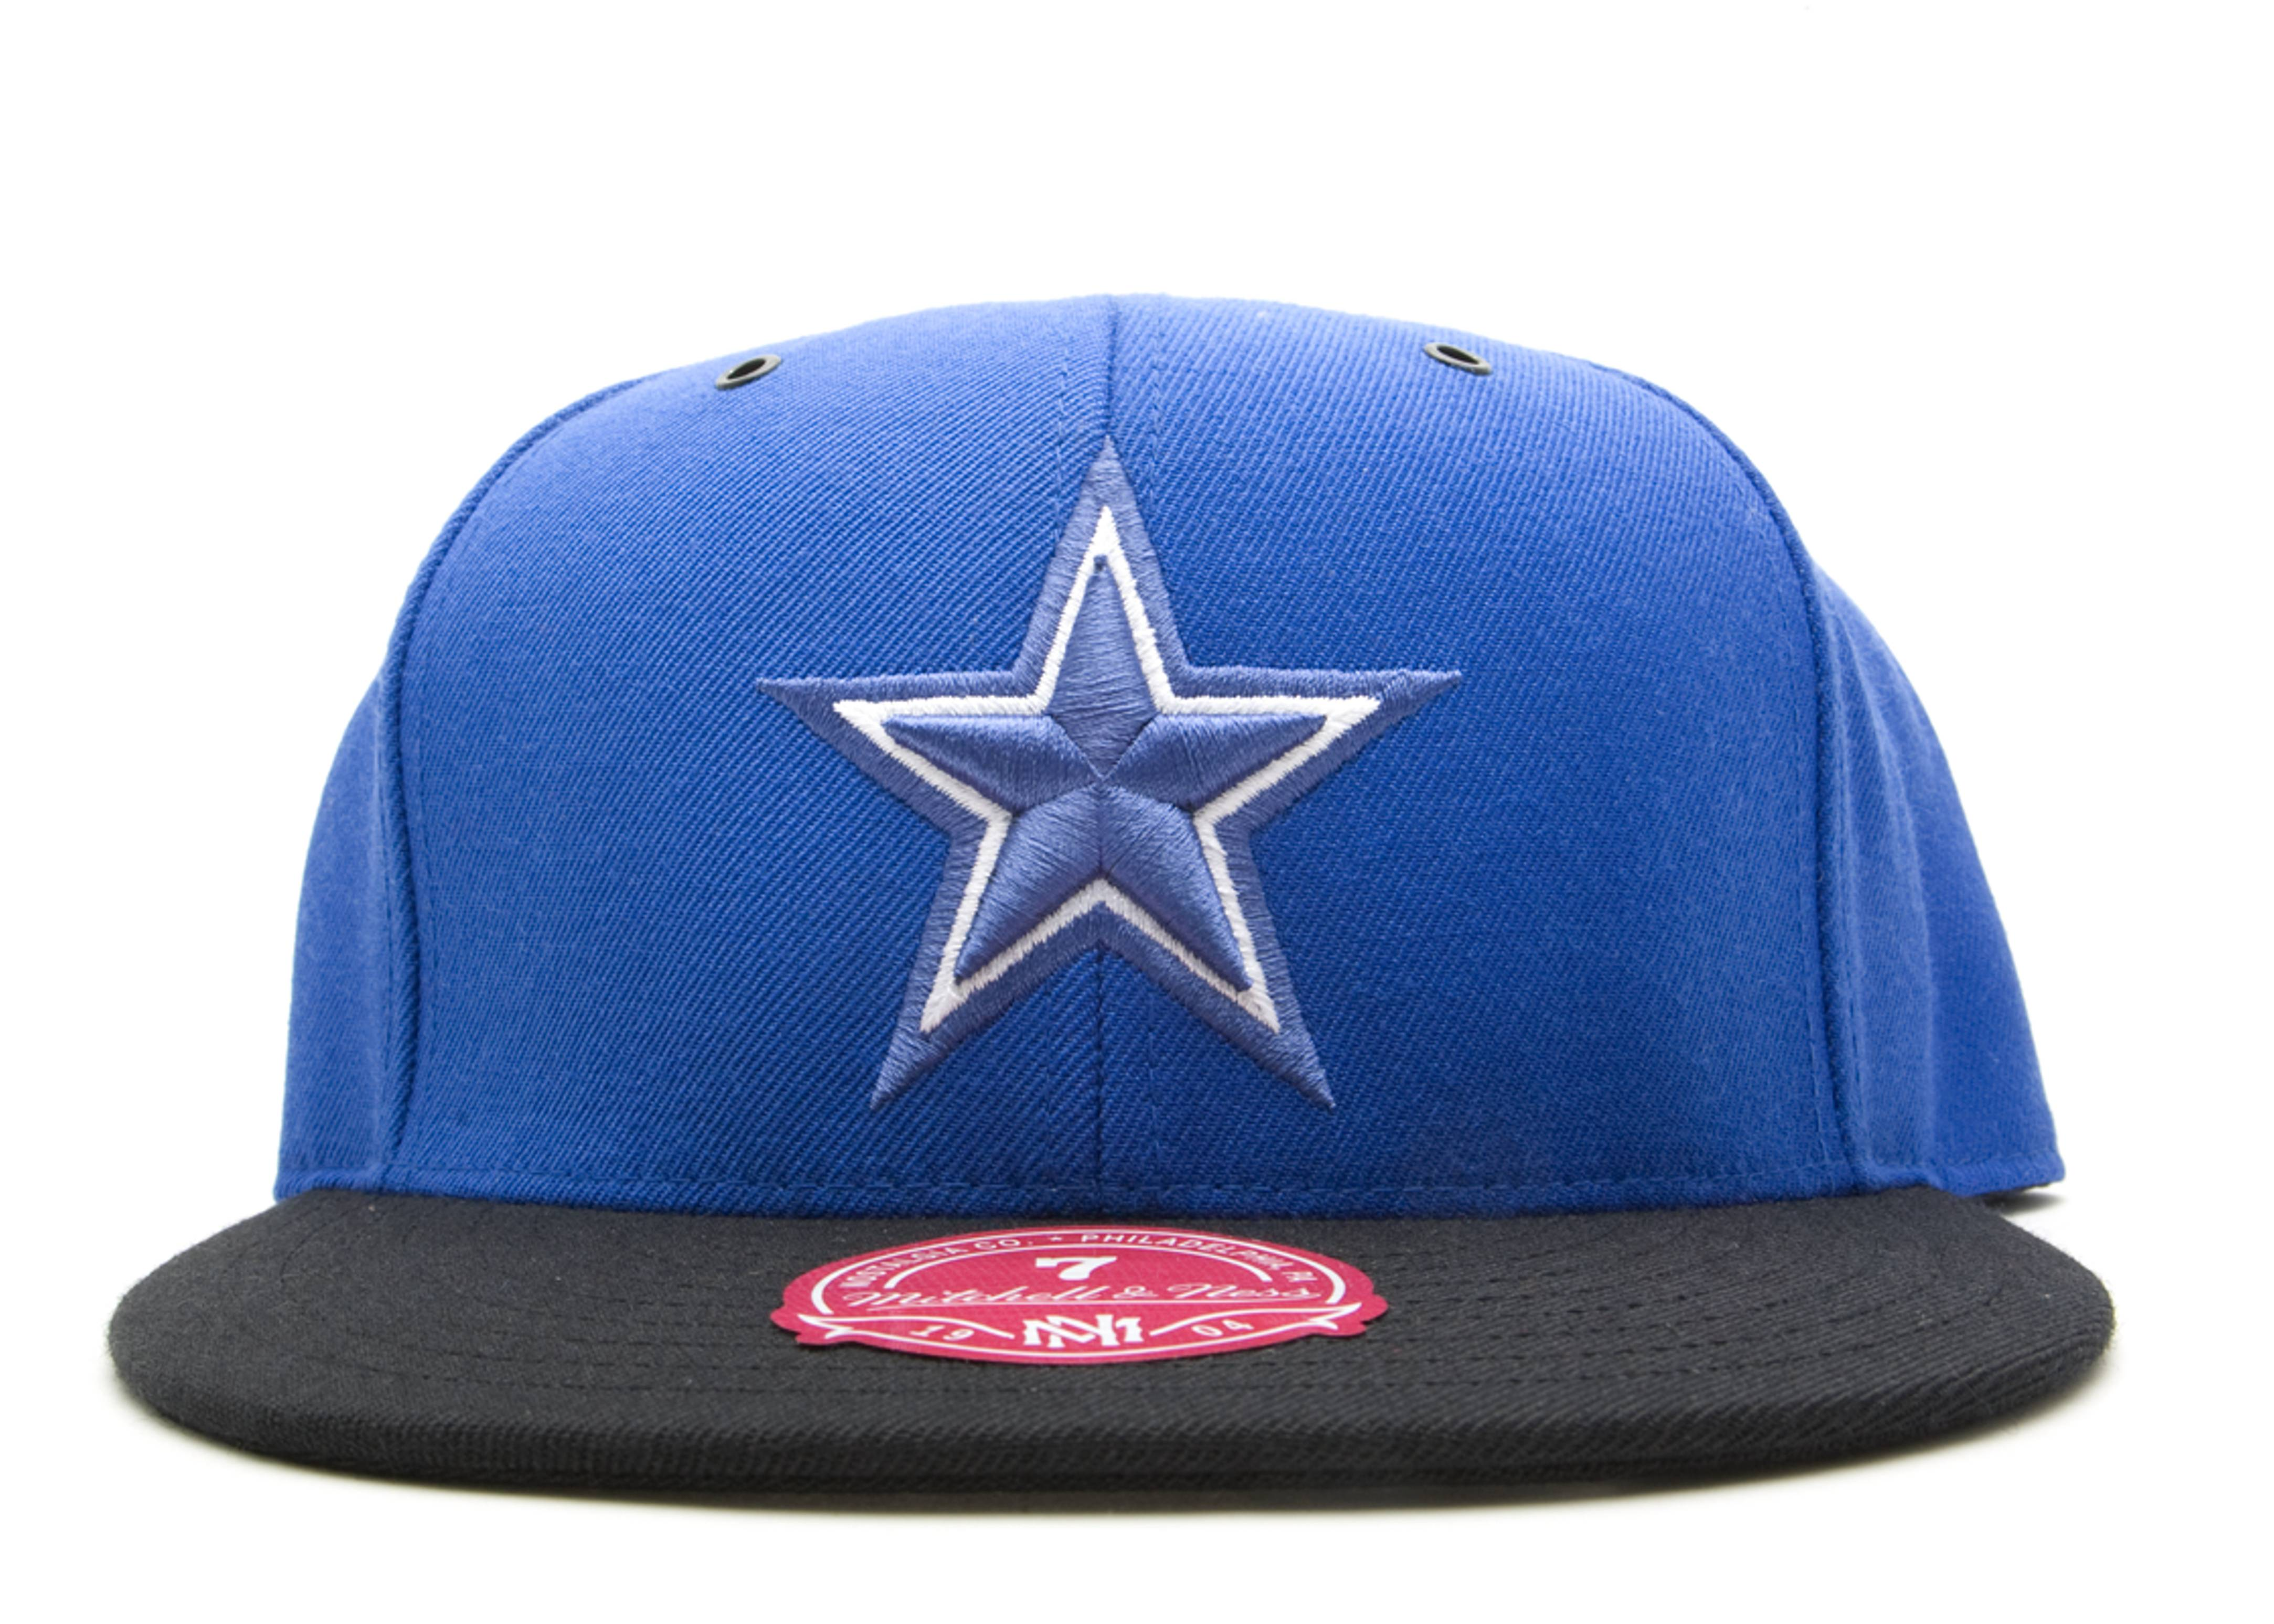 d074722b30f Dallas Cowboys 2 Tone Fitted - Mitchell   Ness - tt26bte6cowbo ...